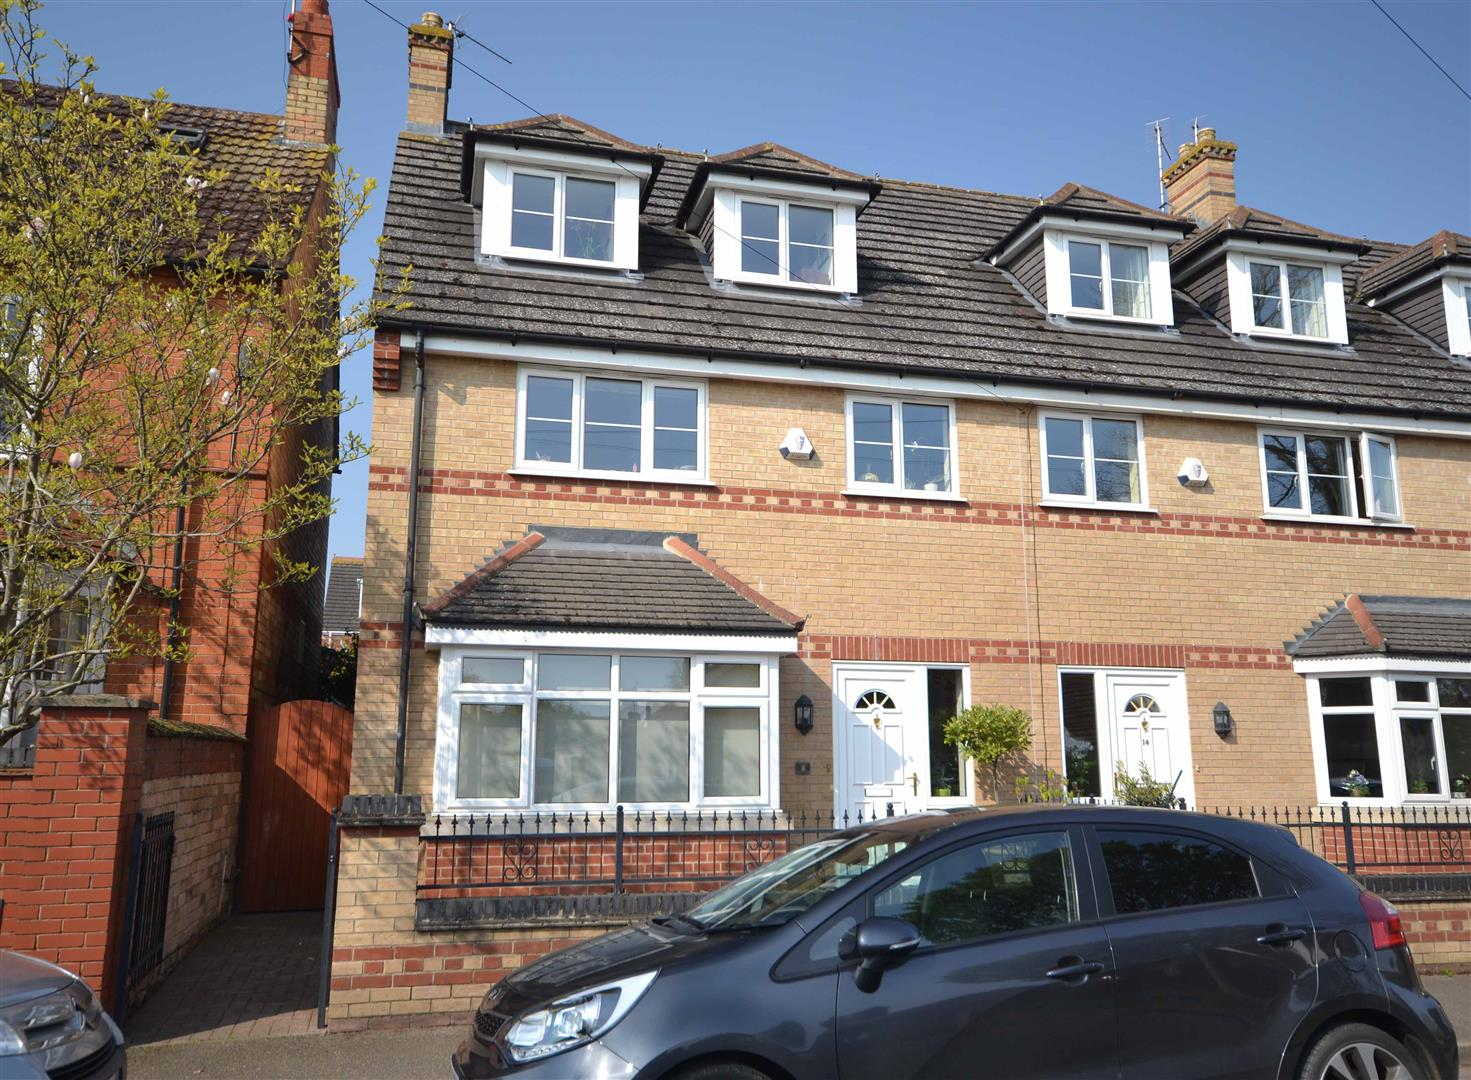 4 Bedroom House - Townhouse -